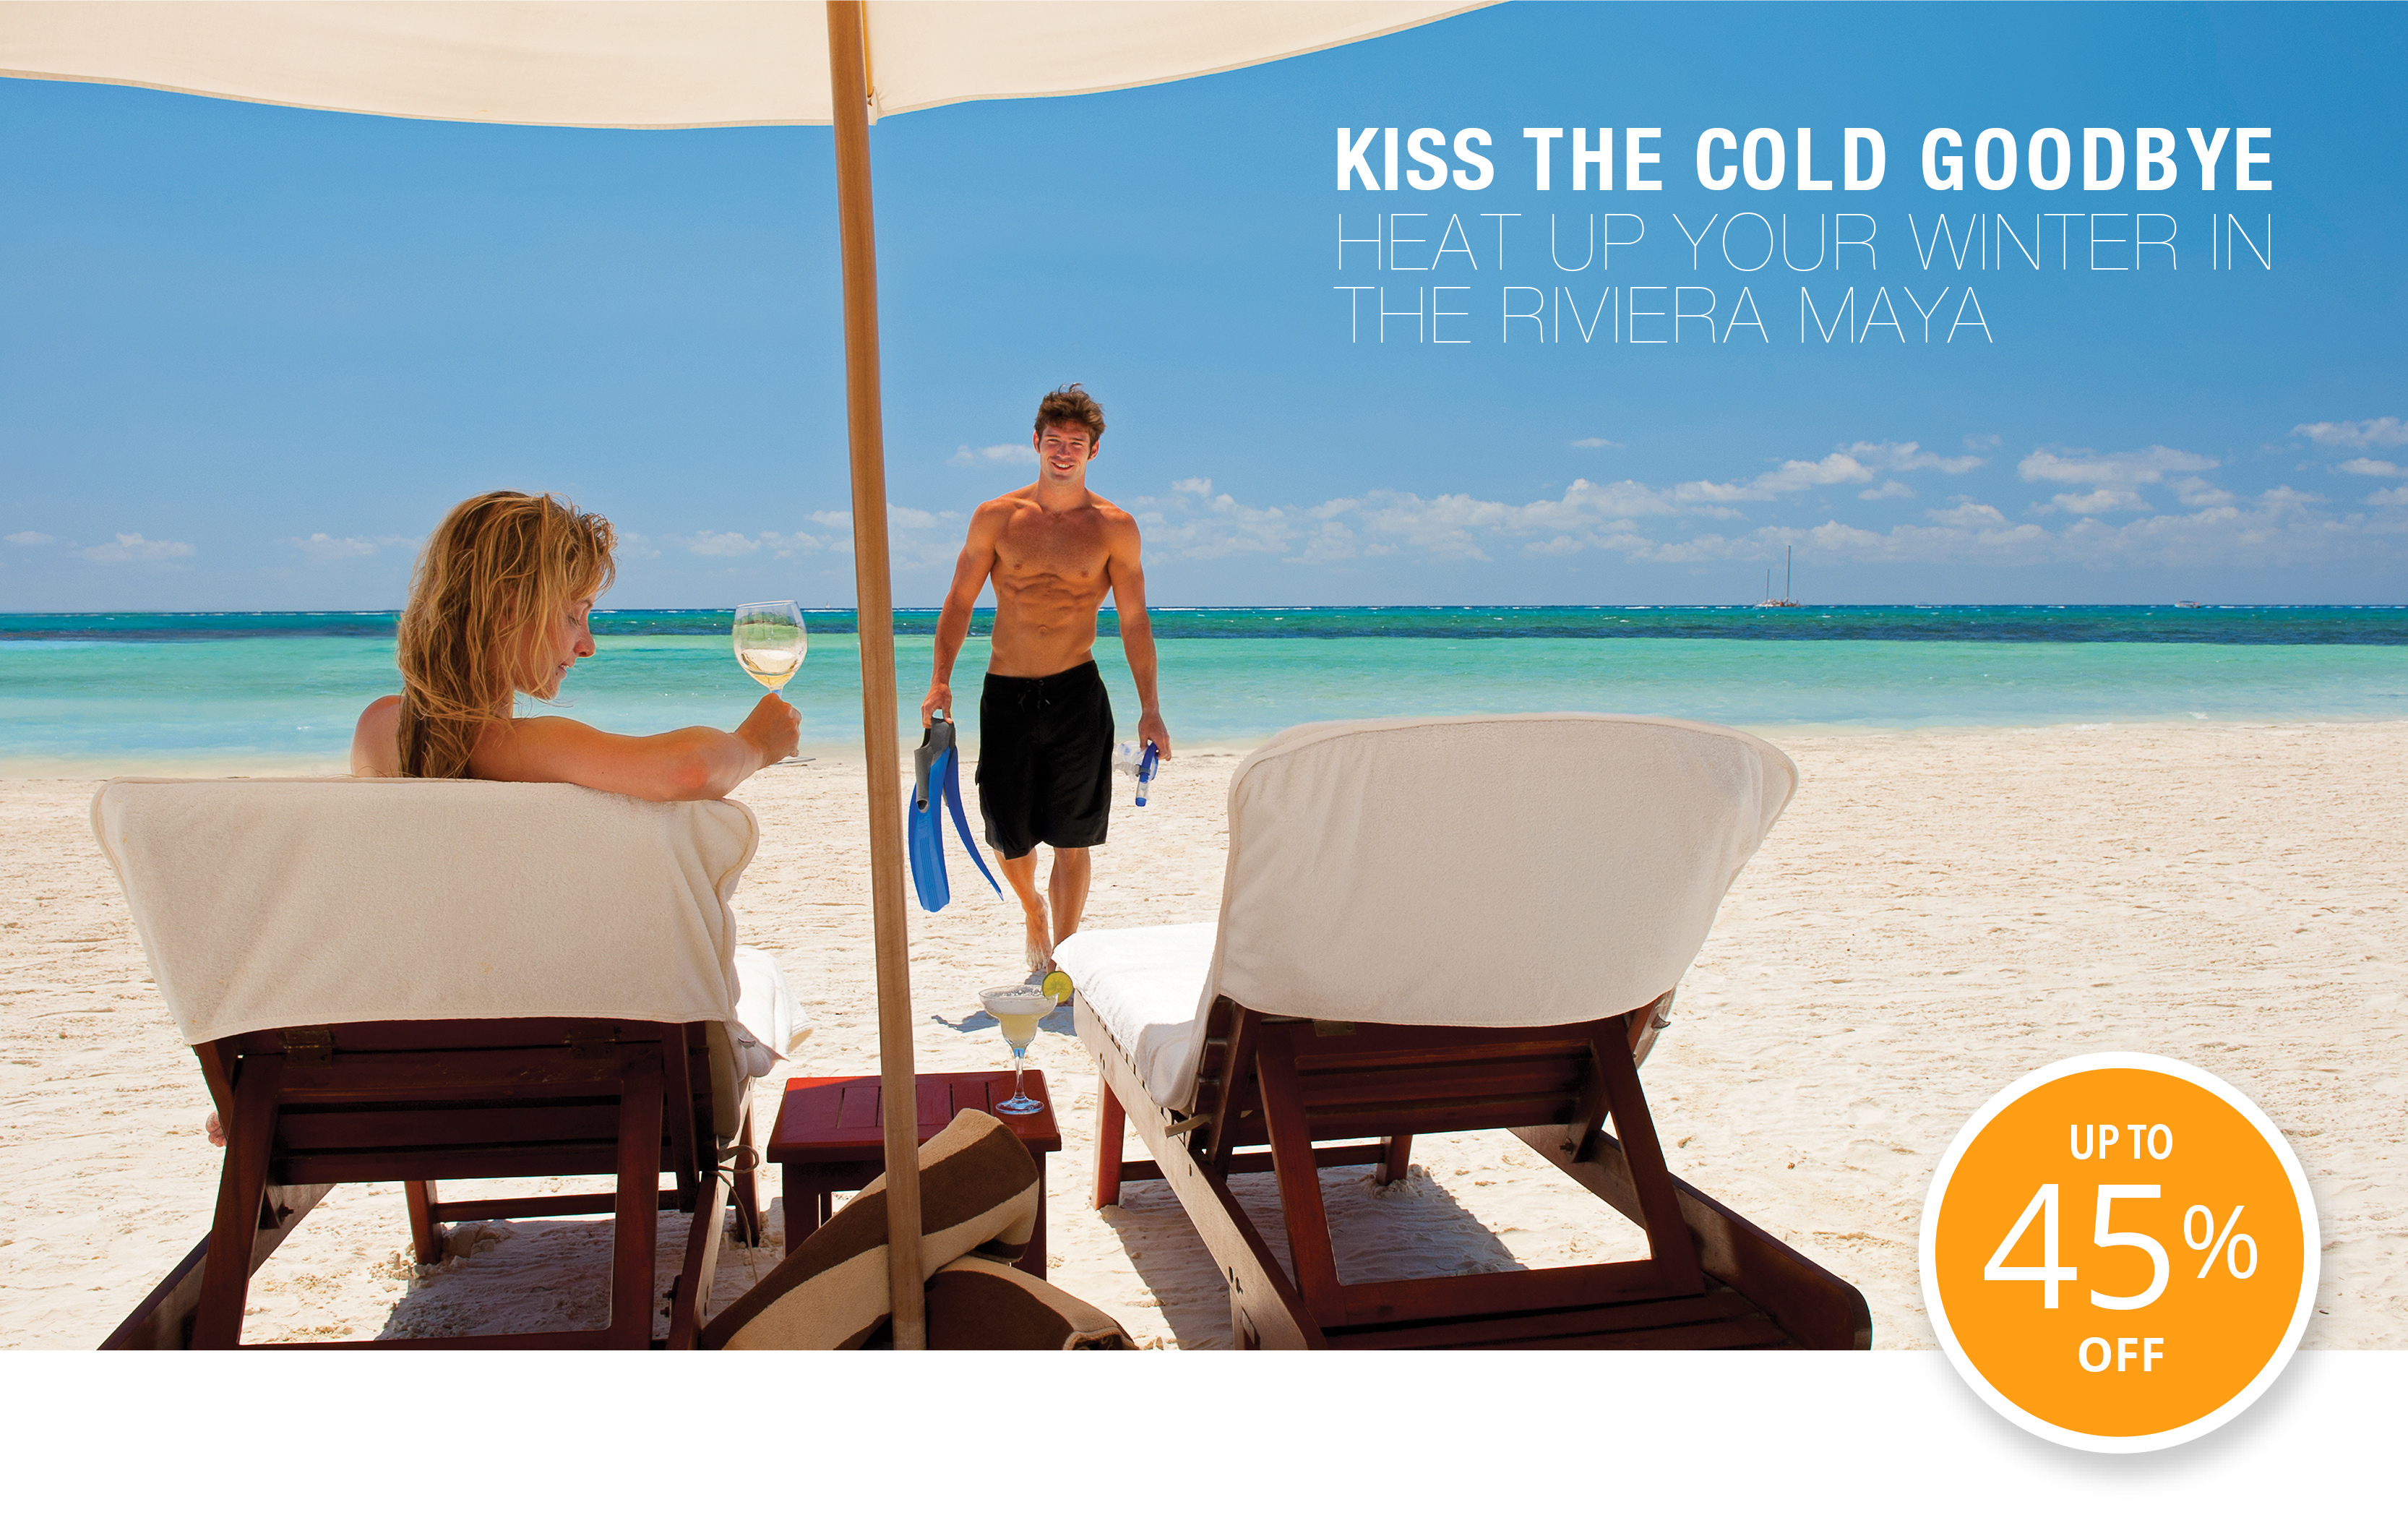 KISS THE COLD GOODBYE. UP TO 45 OFF